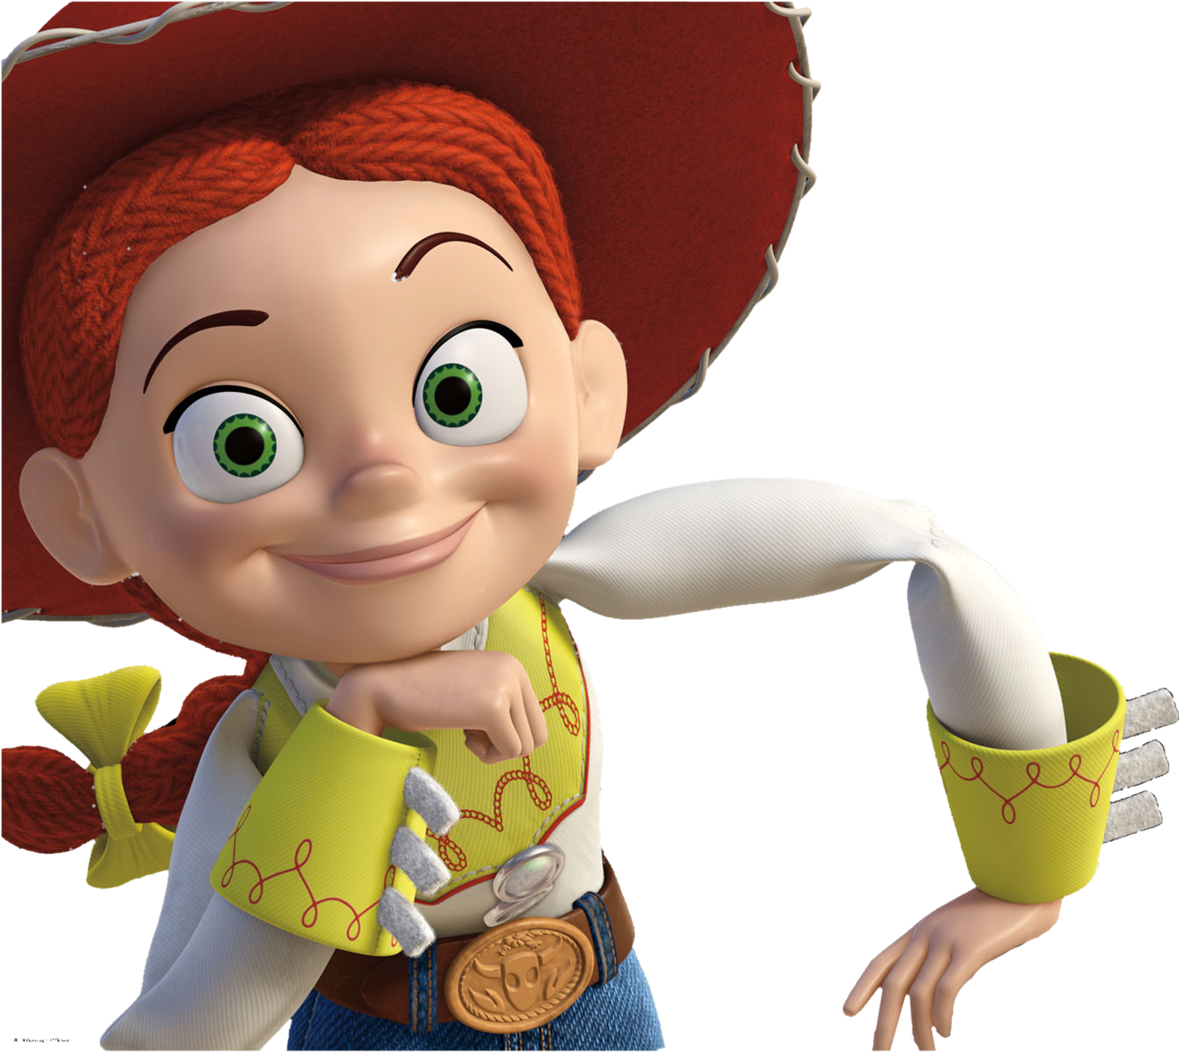 Woody and jessie png. Image from toy story